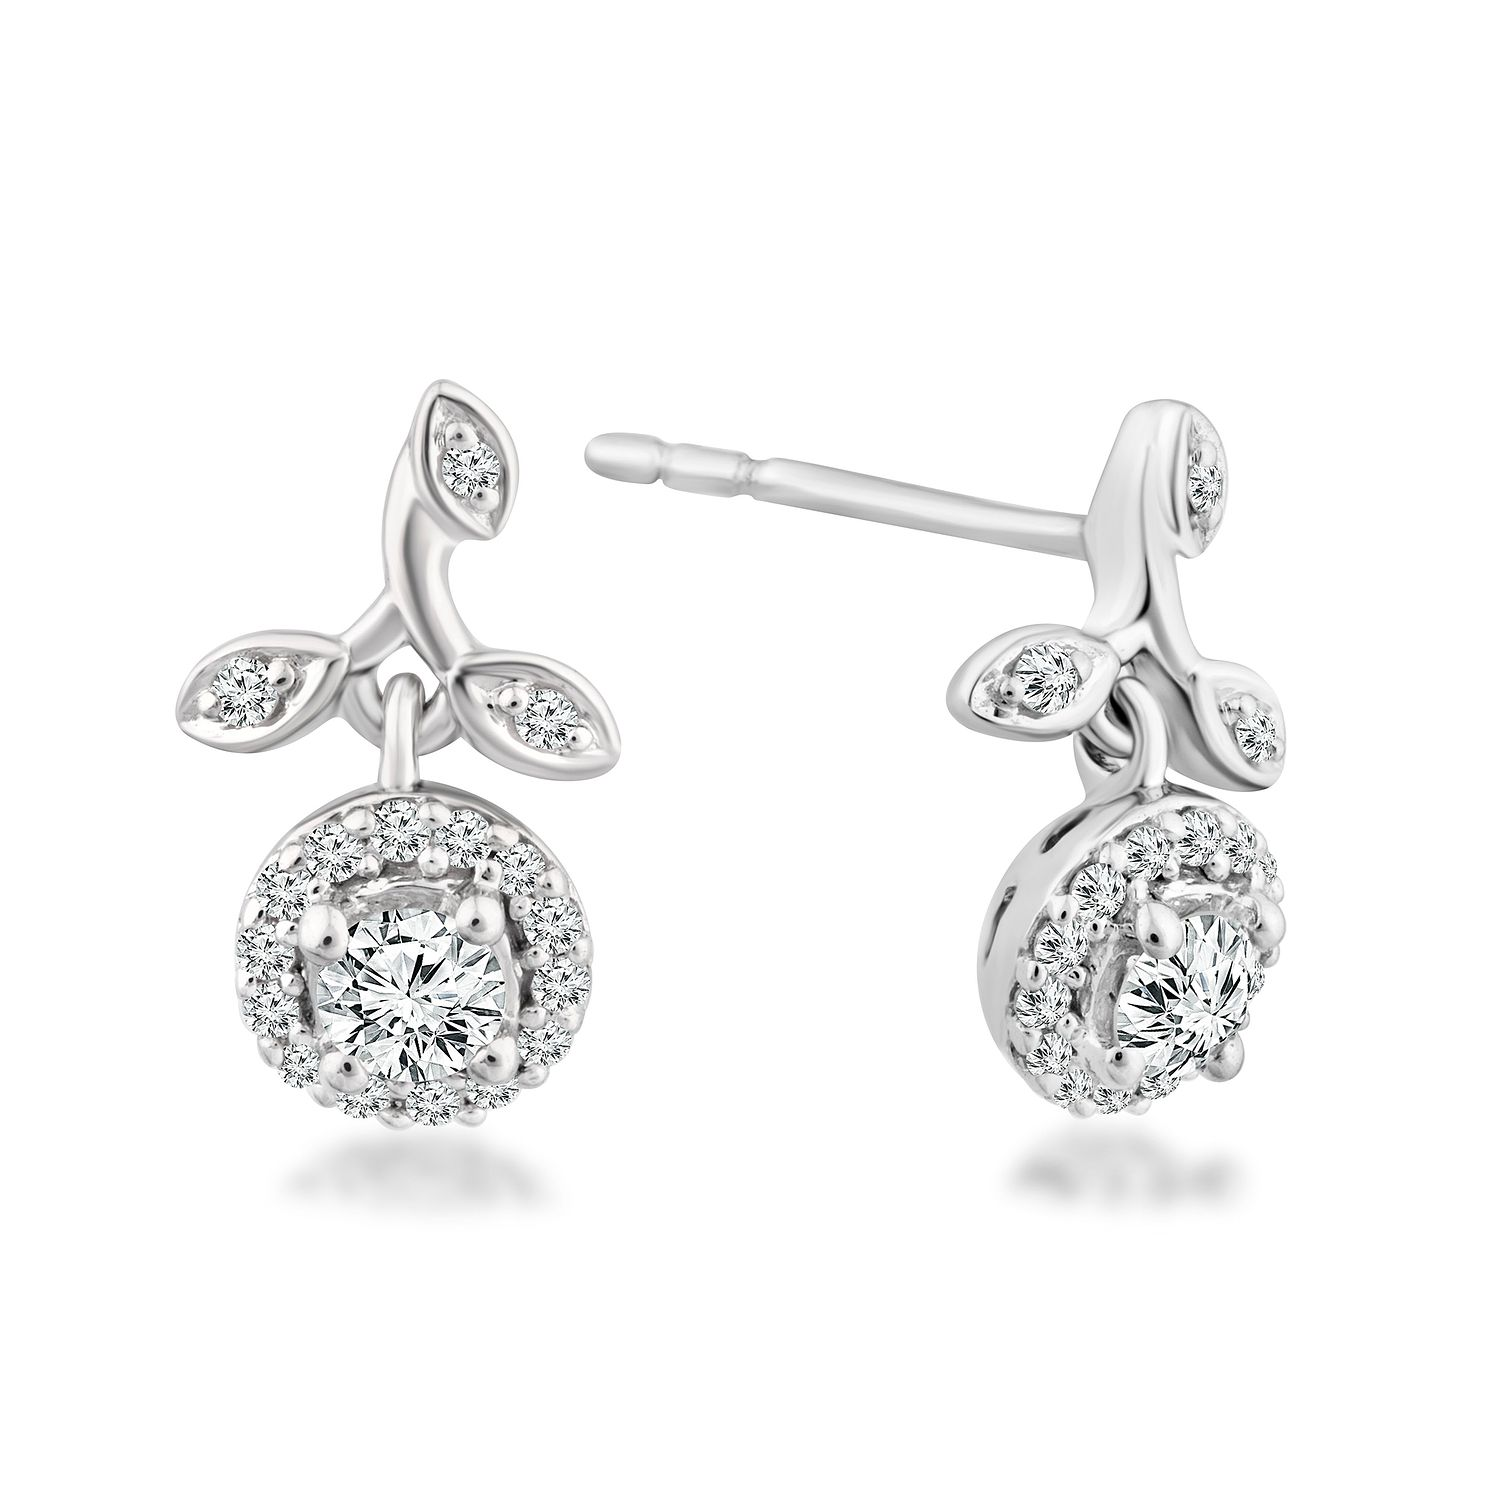 Emmy London 9ct White Gold 1/4ct Diamond Drop Earrings - Product number 4570006